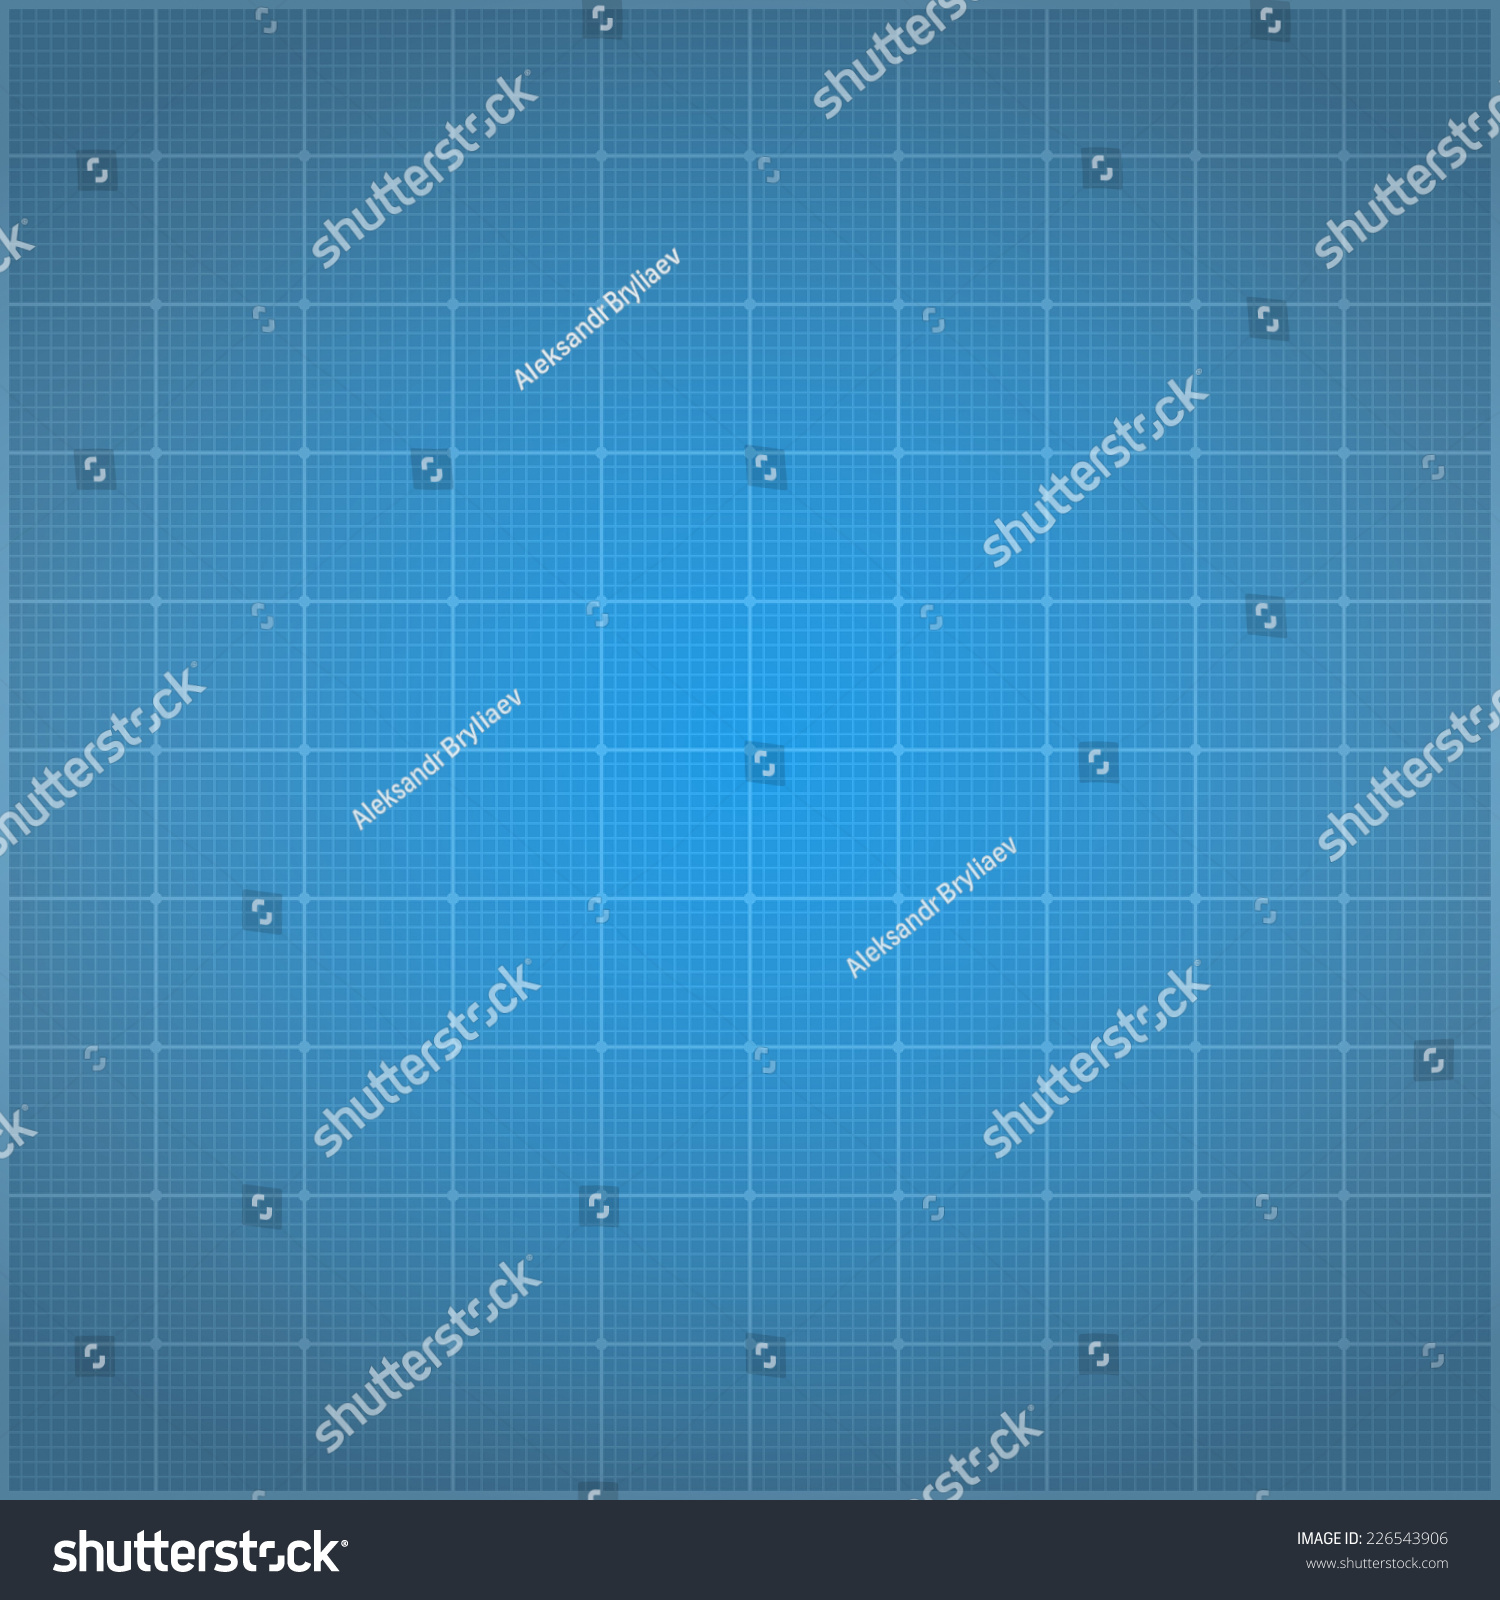 Royalty free blueprint background vector eps10 226543906 stock blueprint background vector eps10 illustration 226543906 malvernweather Choice Image